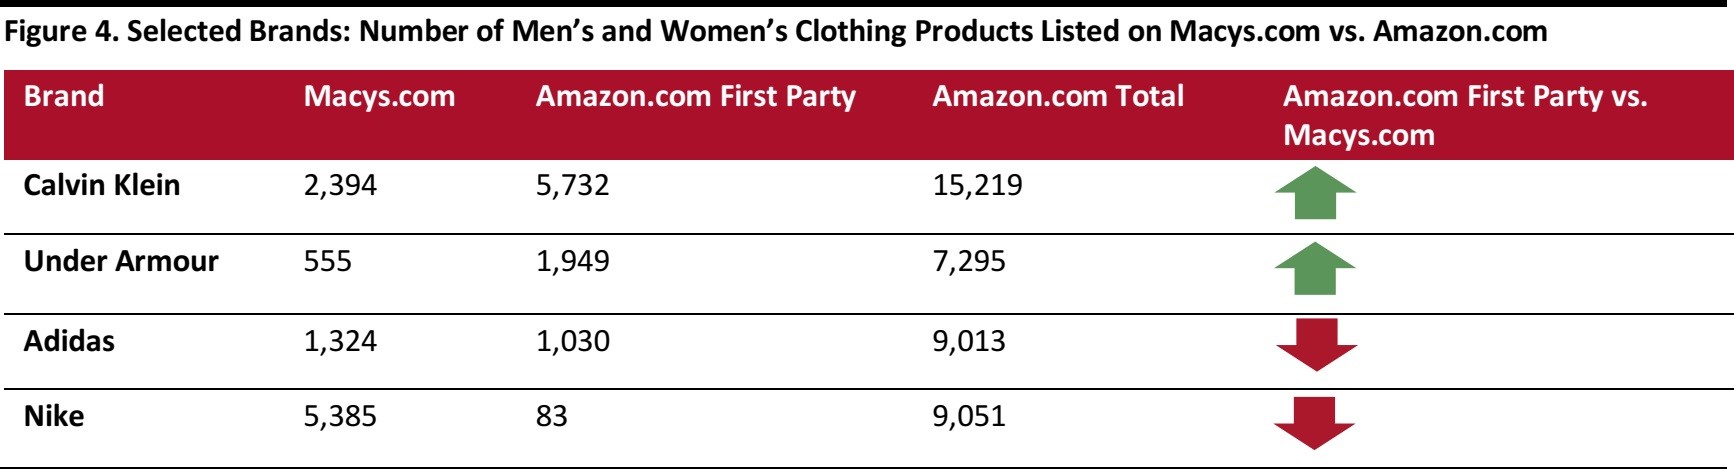 Amazon Apparel Update: An Analysis of More than 1 Million